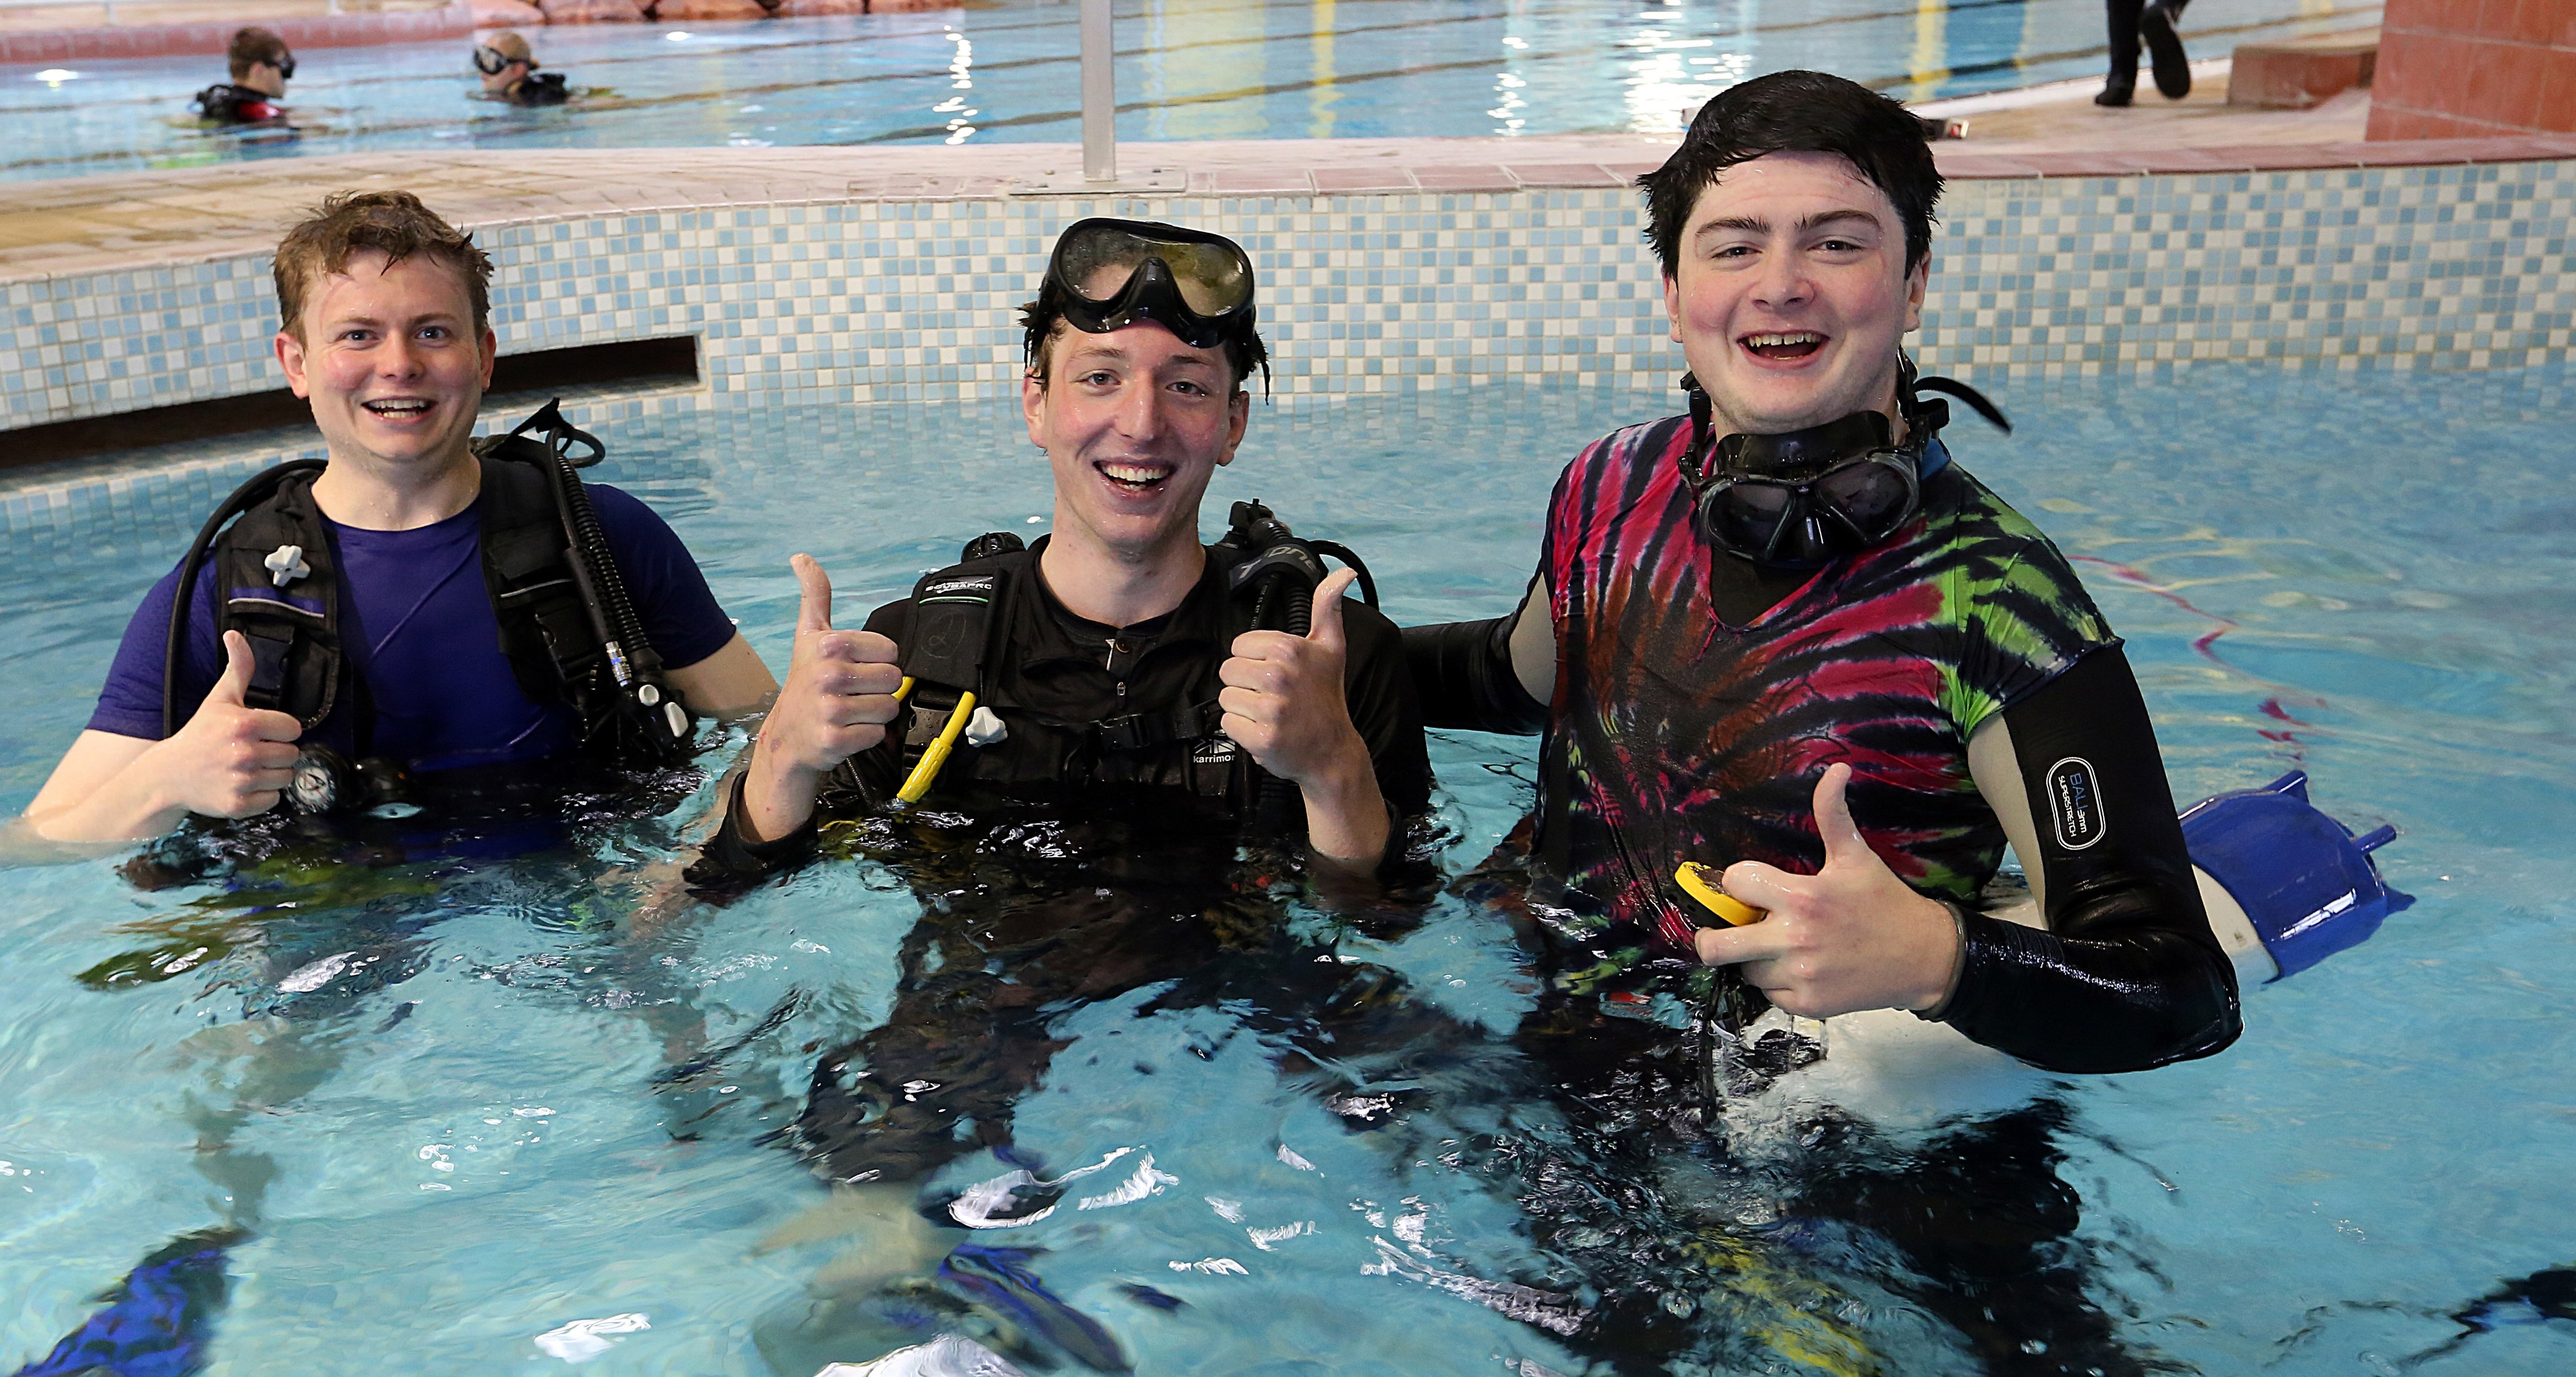 From left, Mark Jones, Harry Gunning and Neil Coupland complete three hours in the pool.